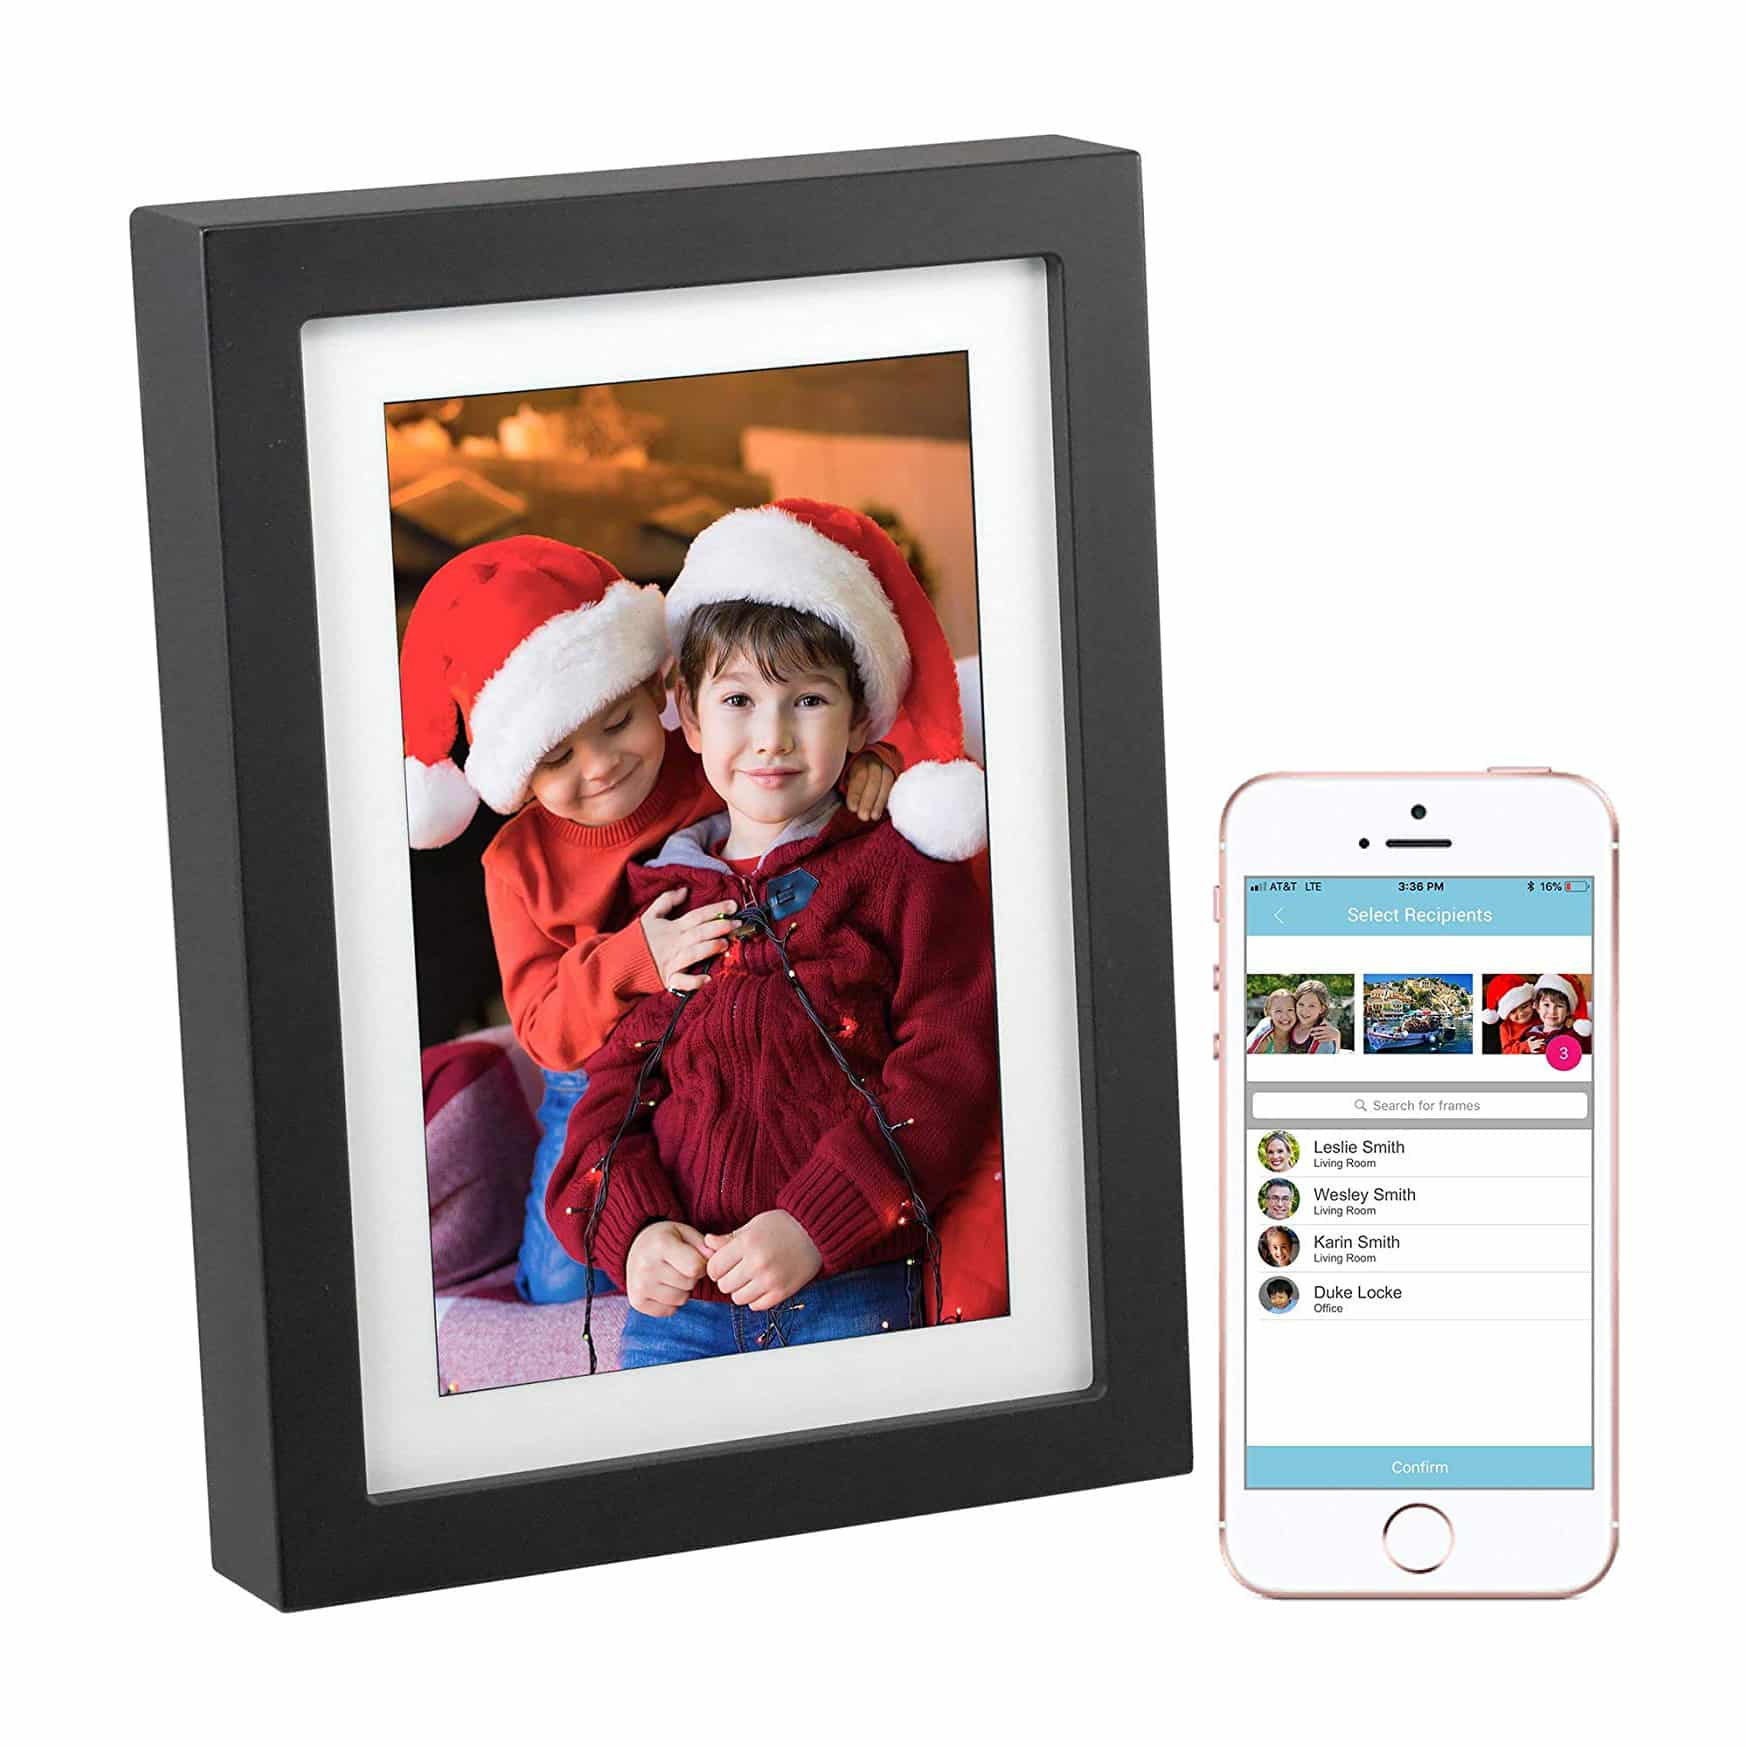 PhotoSpring 8 (16GB) 8-inch WiFi Cloud Digital Picture Frame